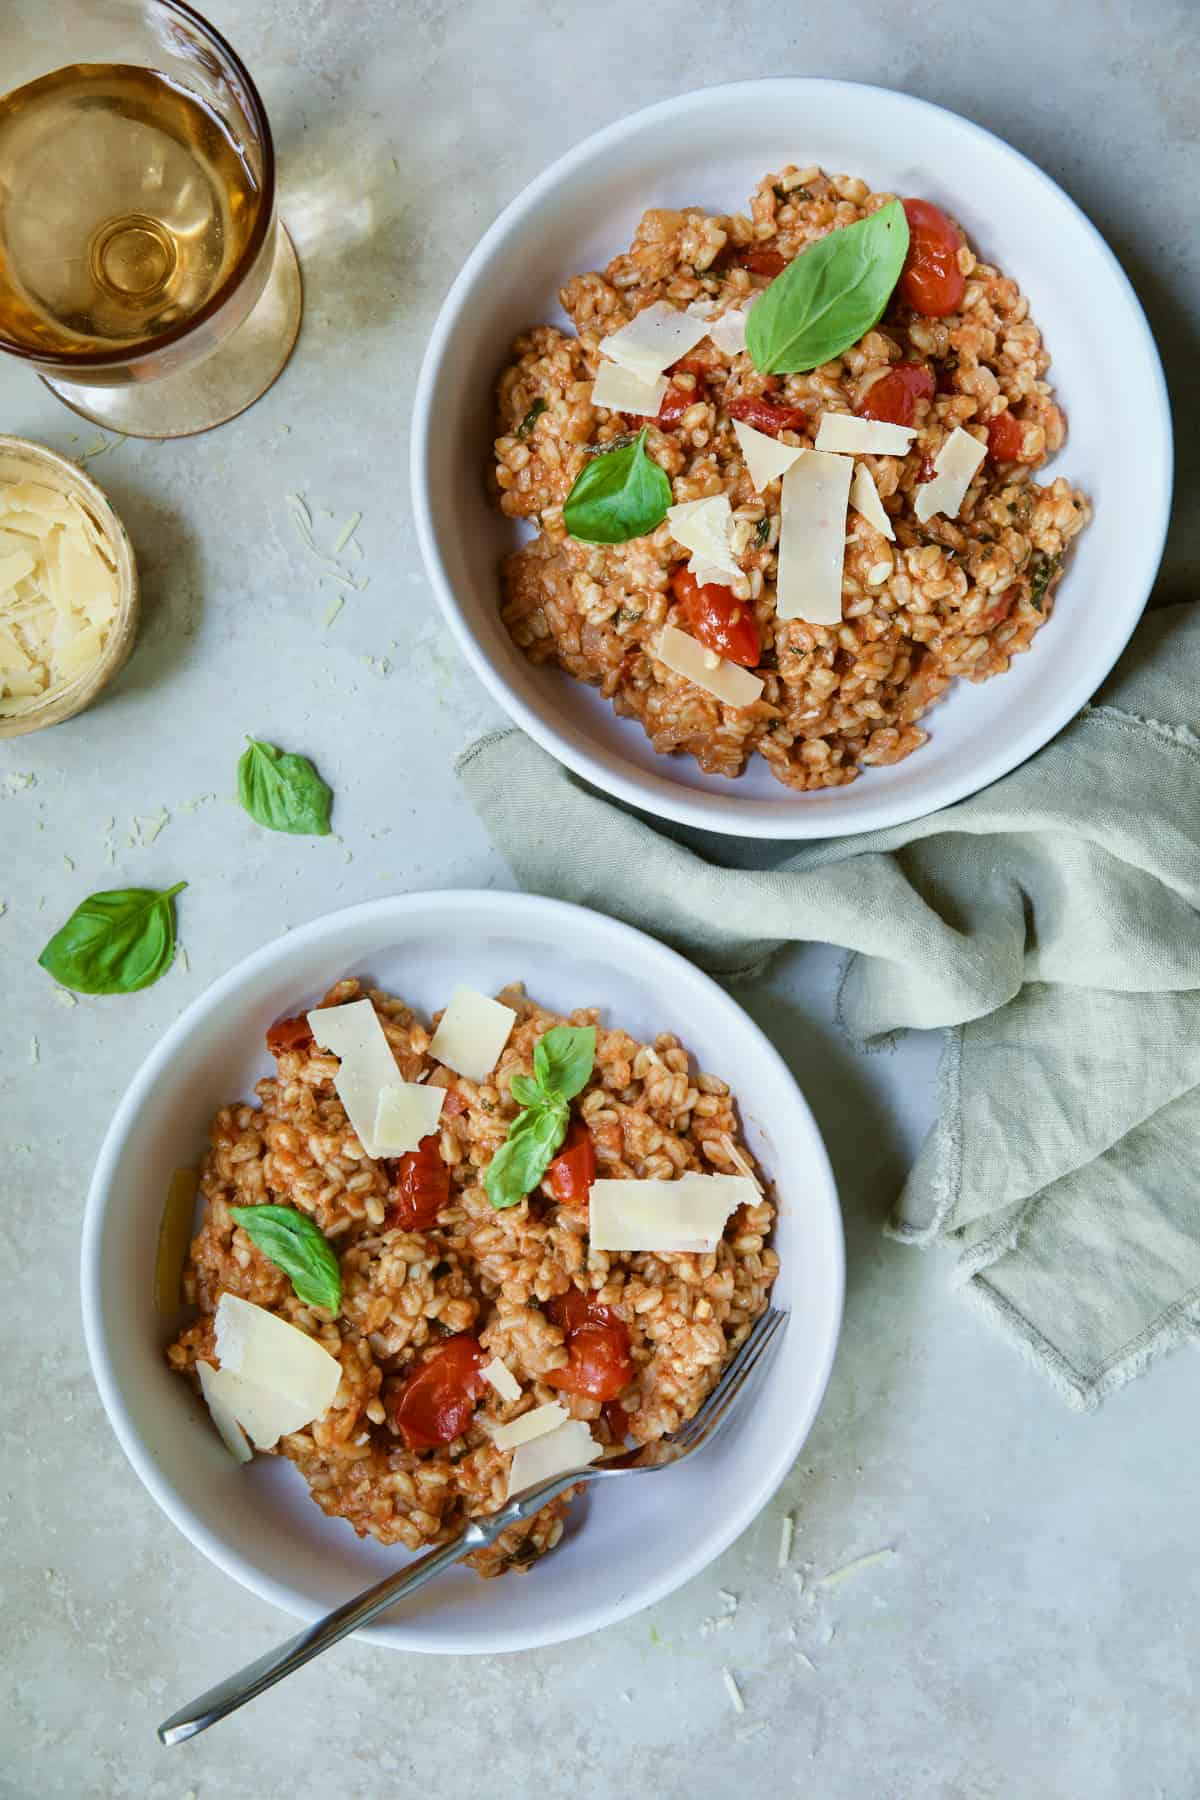 Two servings of Tomato Farro Risotto with Basil and Parmesan in white bowls garnished with basil leaves.